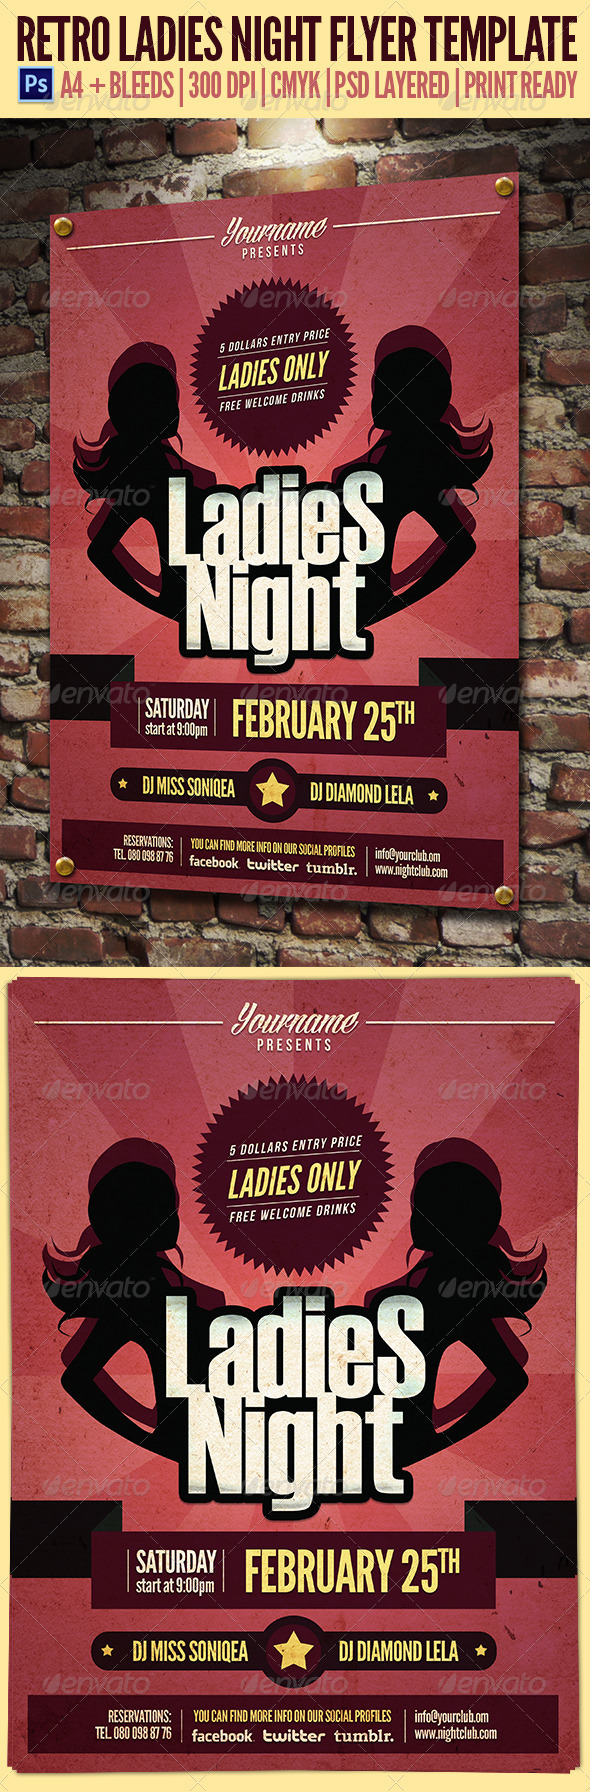 Retro Ladies Night Flyer Template - Clubs & Parties Events